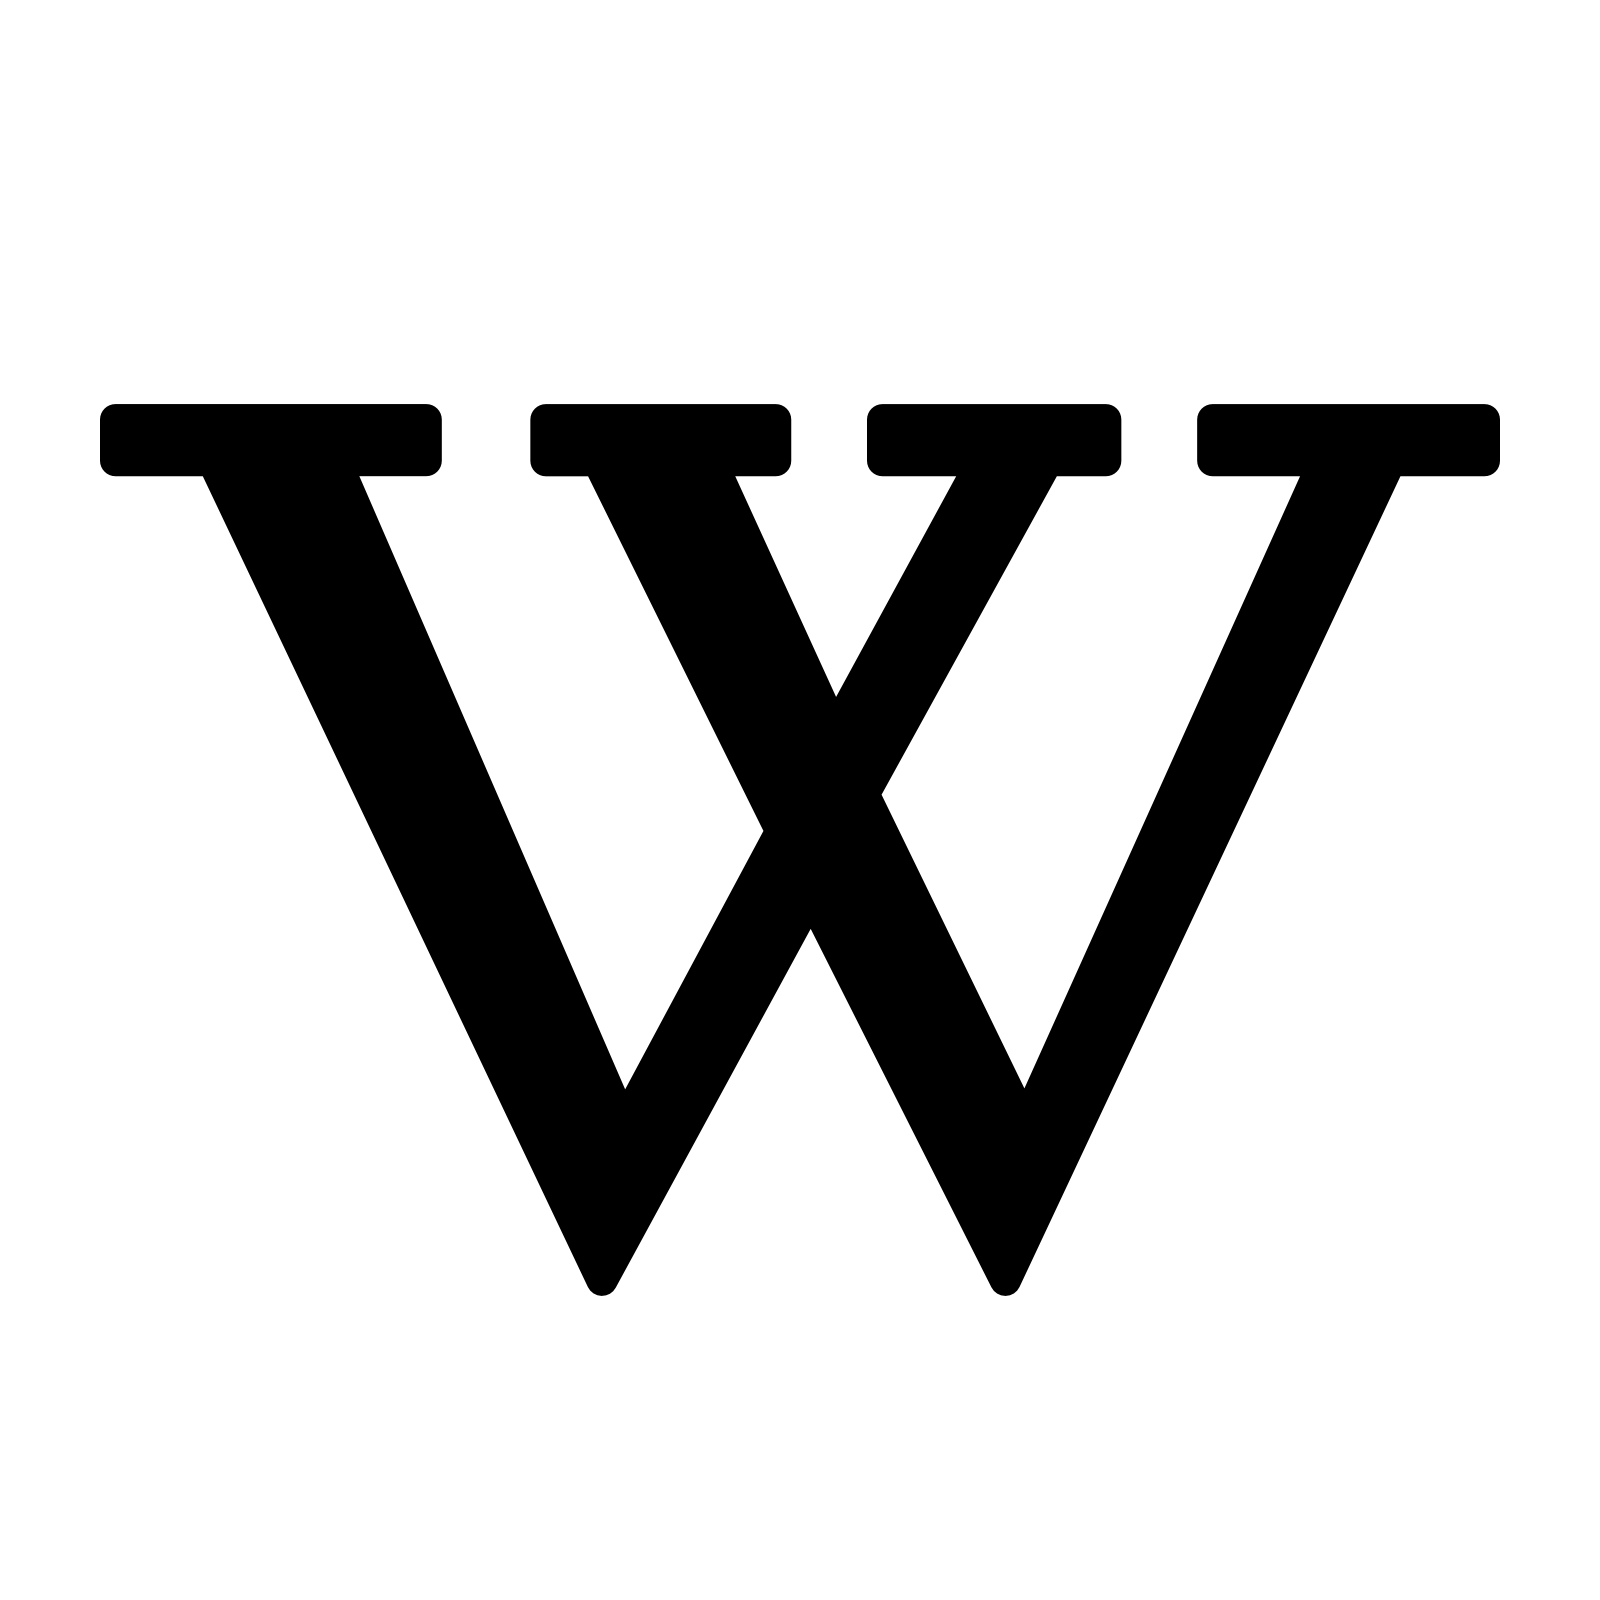 Wikipedia article creation/monitor services start at